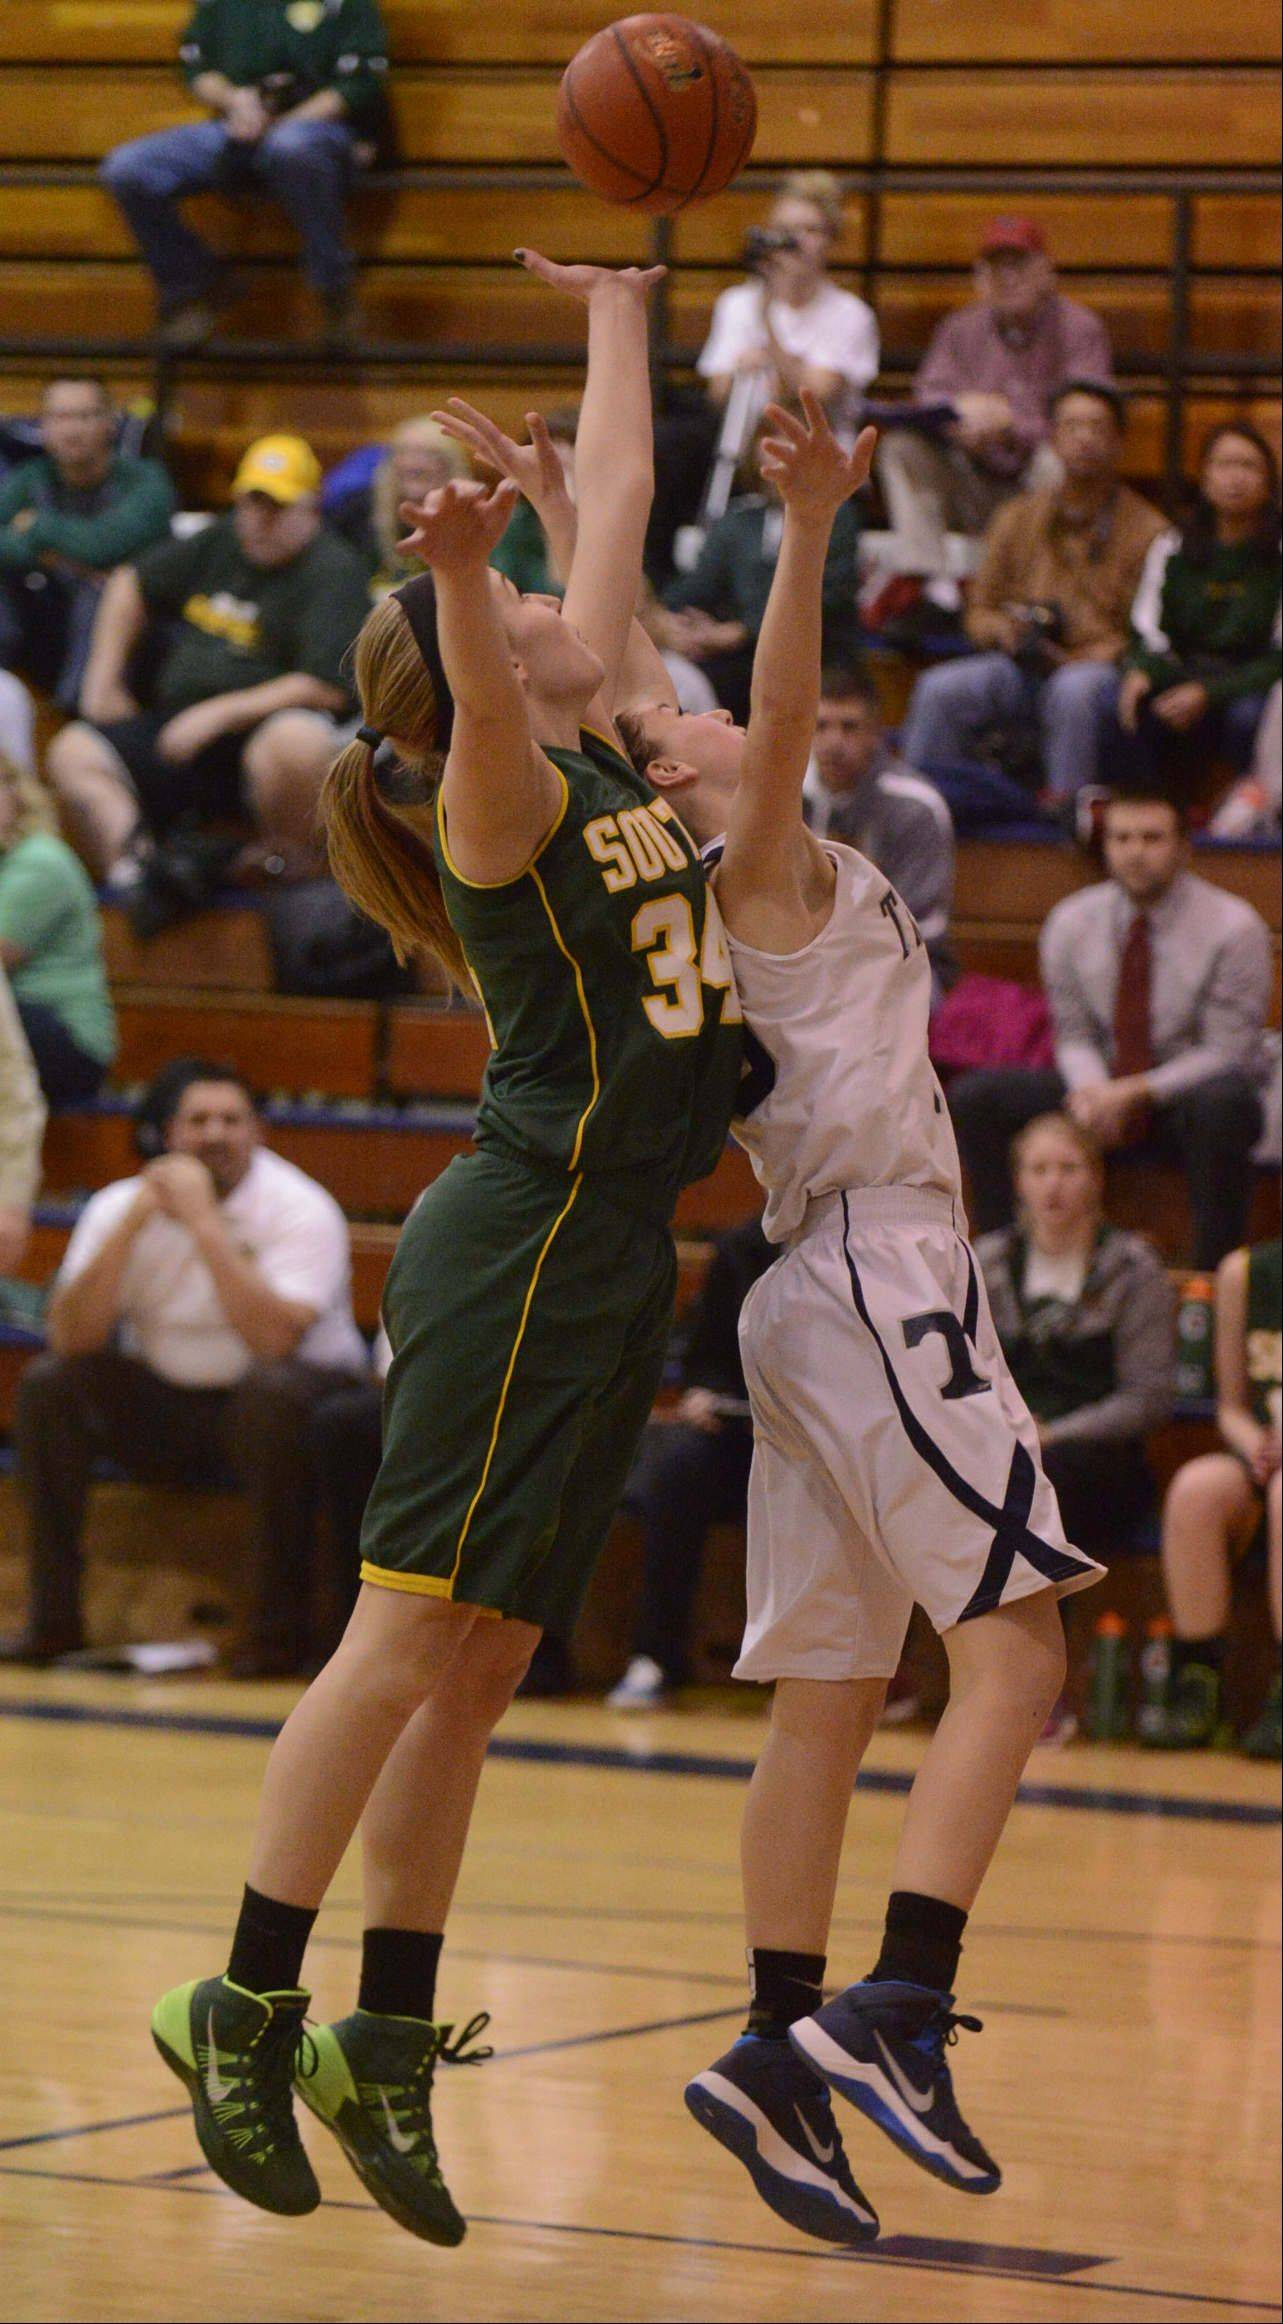 Images from the Crystal Lake South vs. Cary-Grove girls basketball game Saturday, January 11, 2014.